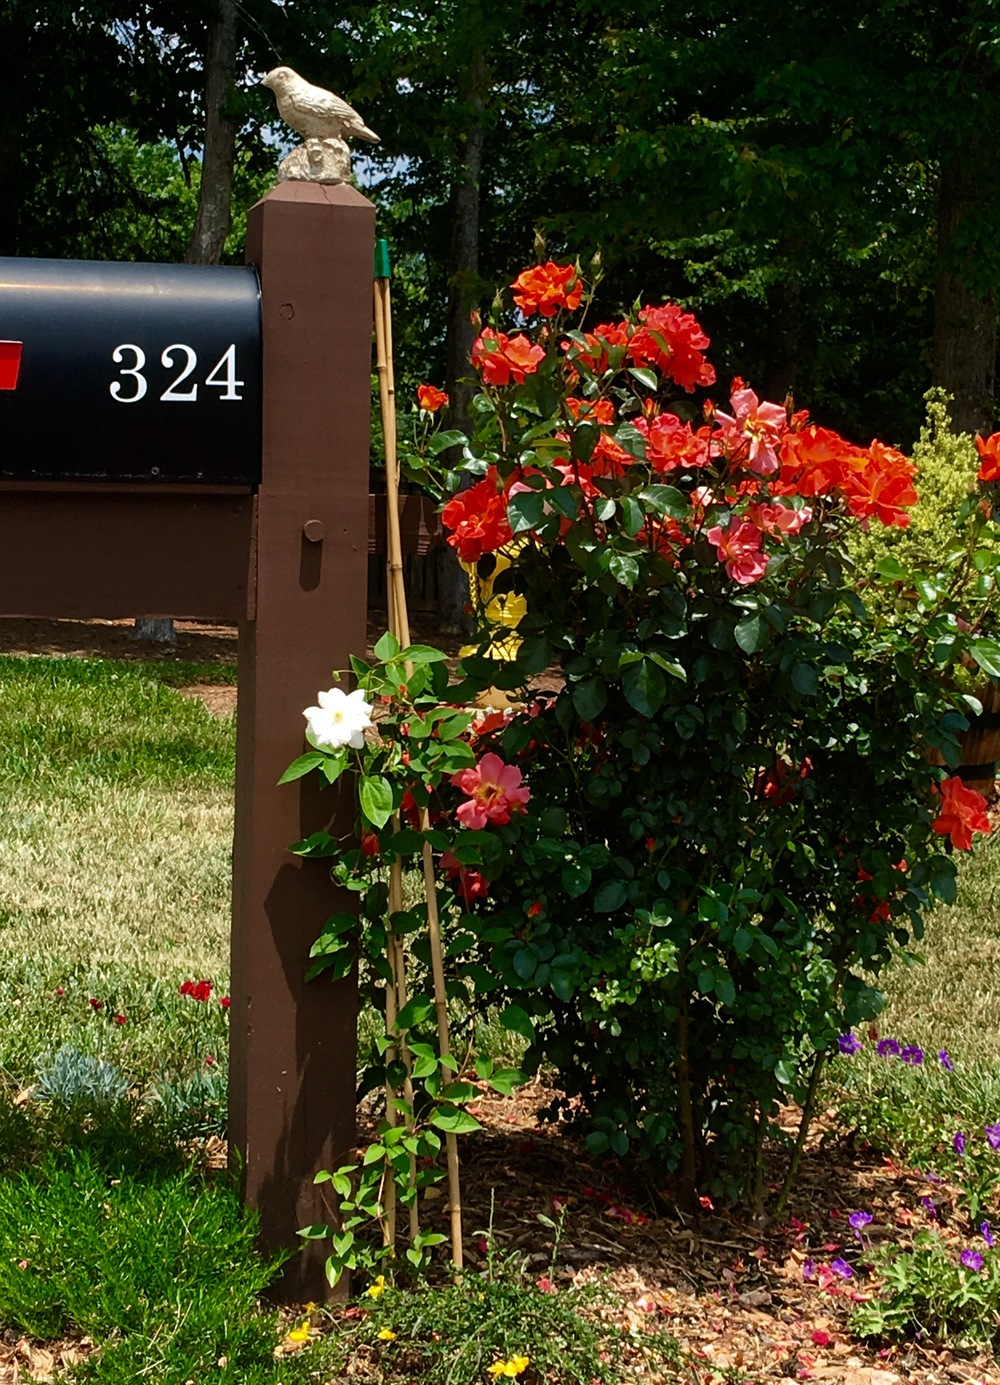 Rose bush next to mailbox.